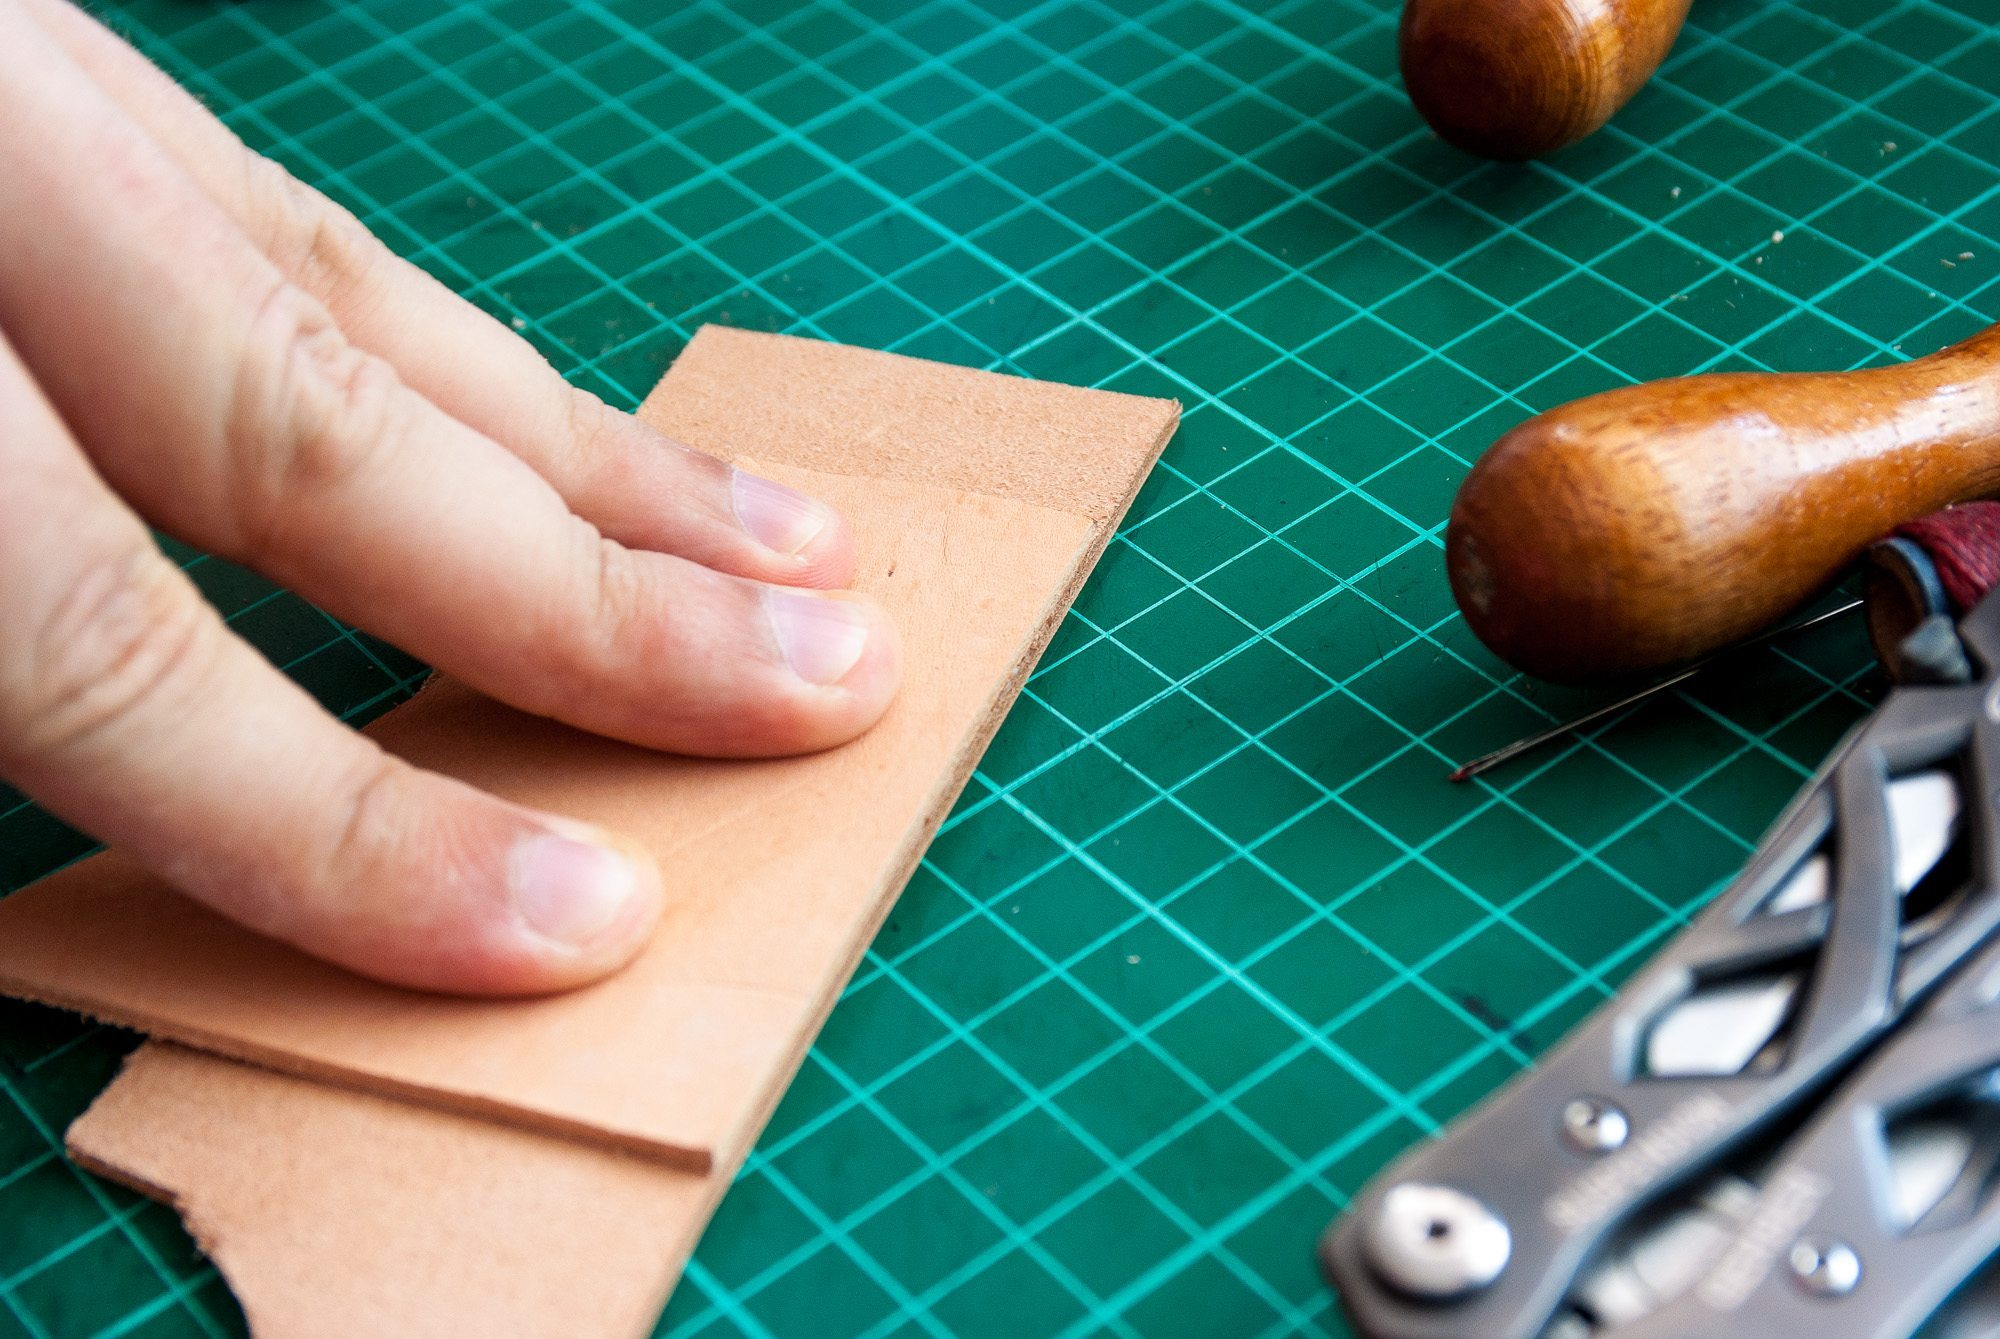 Step 1: Glueing leather pieces